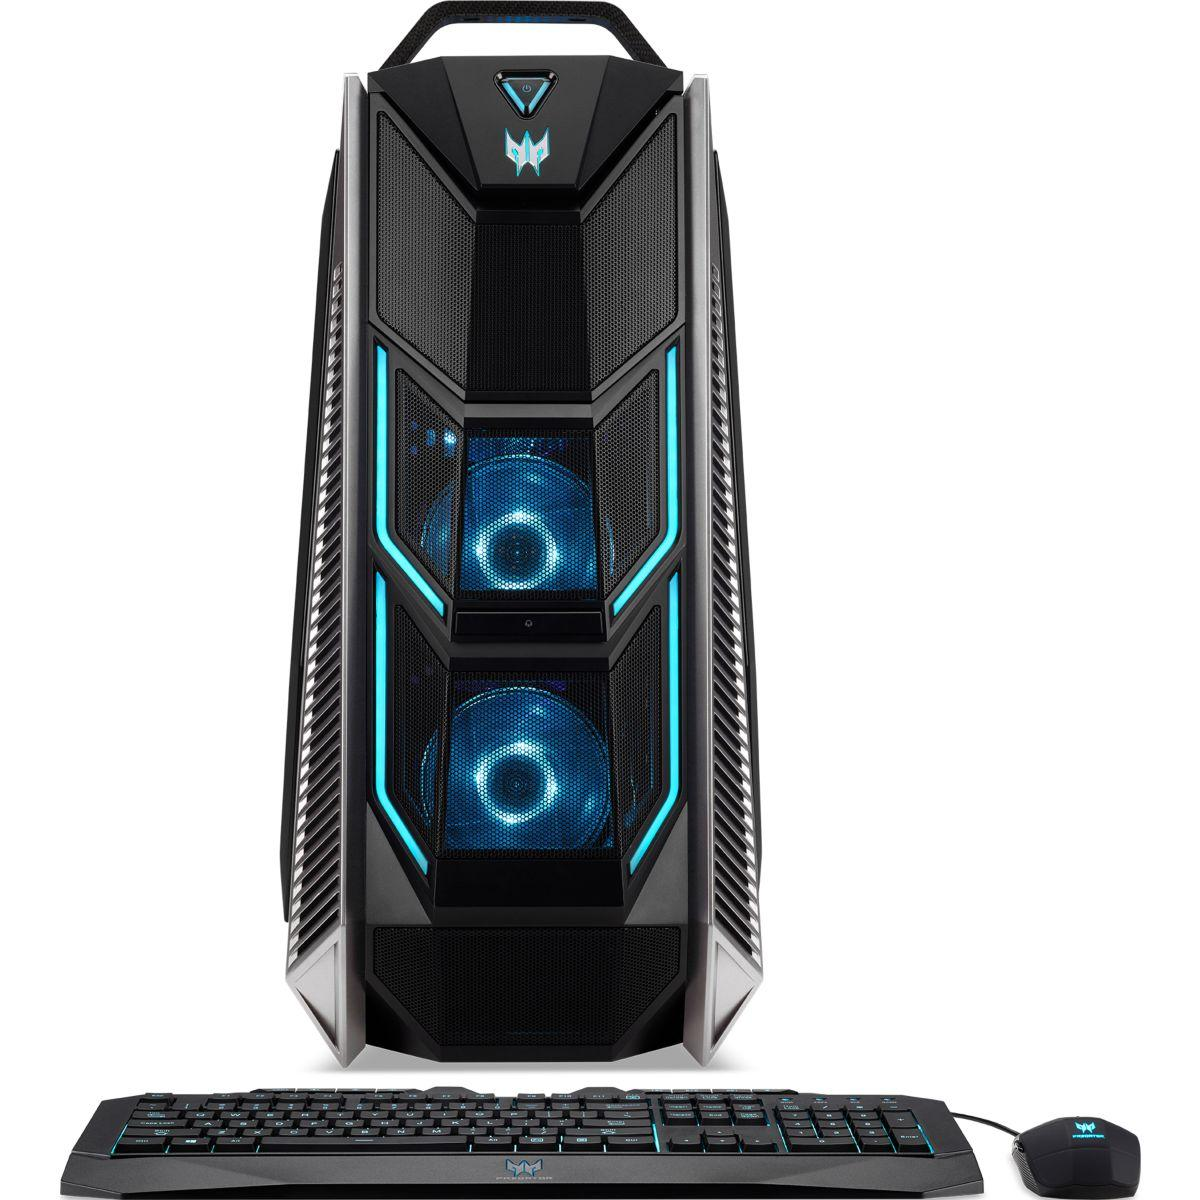 Pc gamer acer predator po9-900x - livraison offerte : code relay (photo)